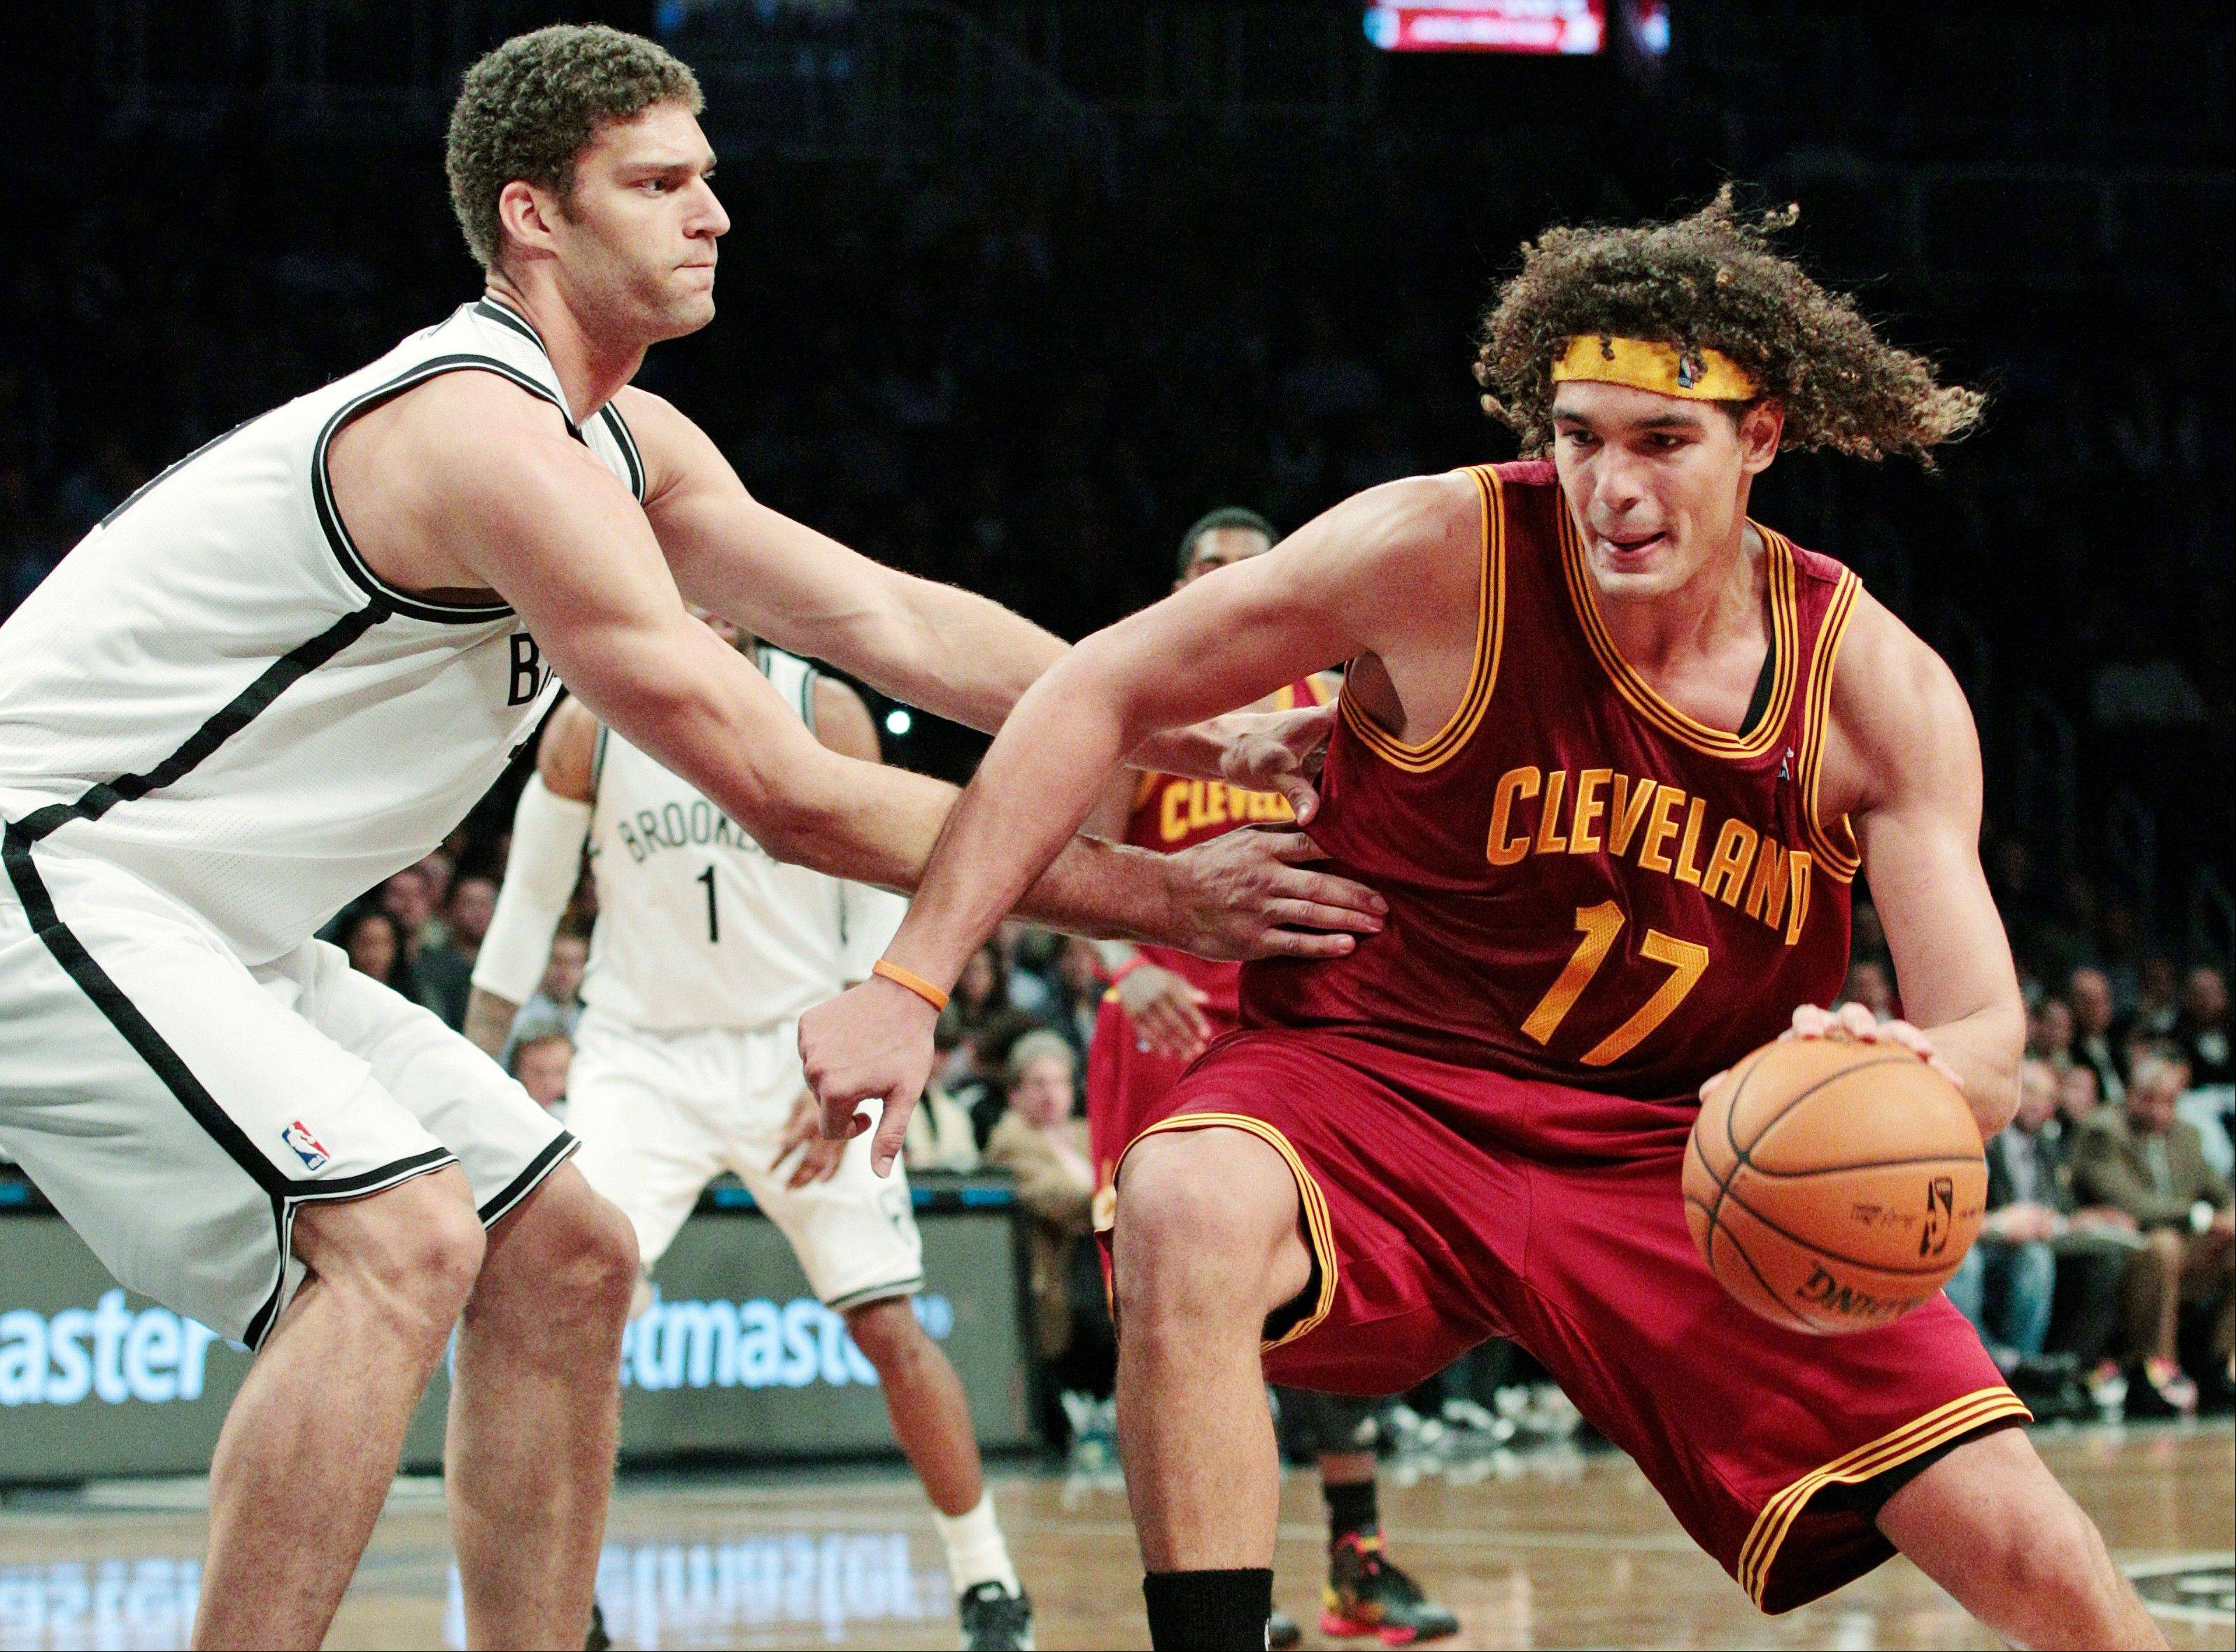 The Brooklyn Nets' Brook Lopez defends the Cleveland Cavaliers' Anderson Varejao Tuesday during the second half in New York. The Nets won 114-101.